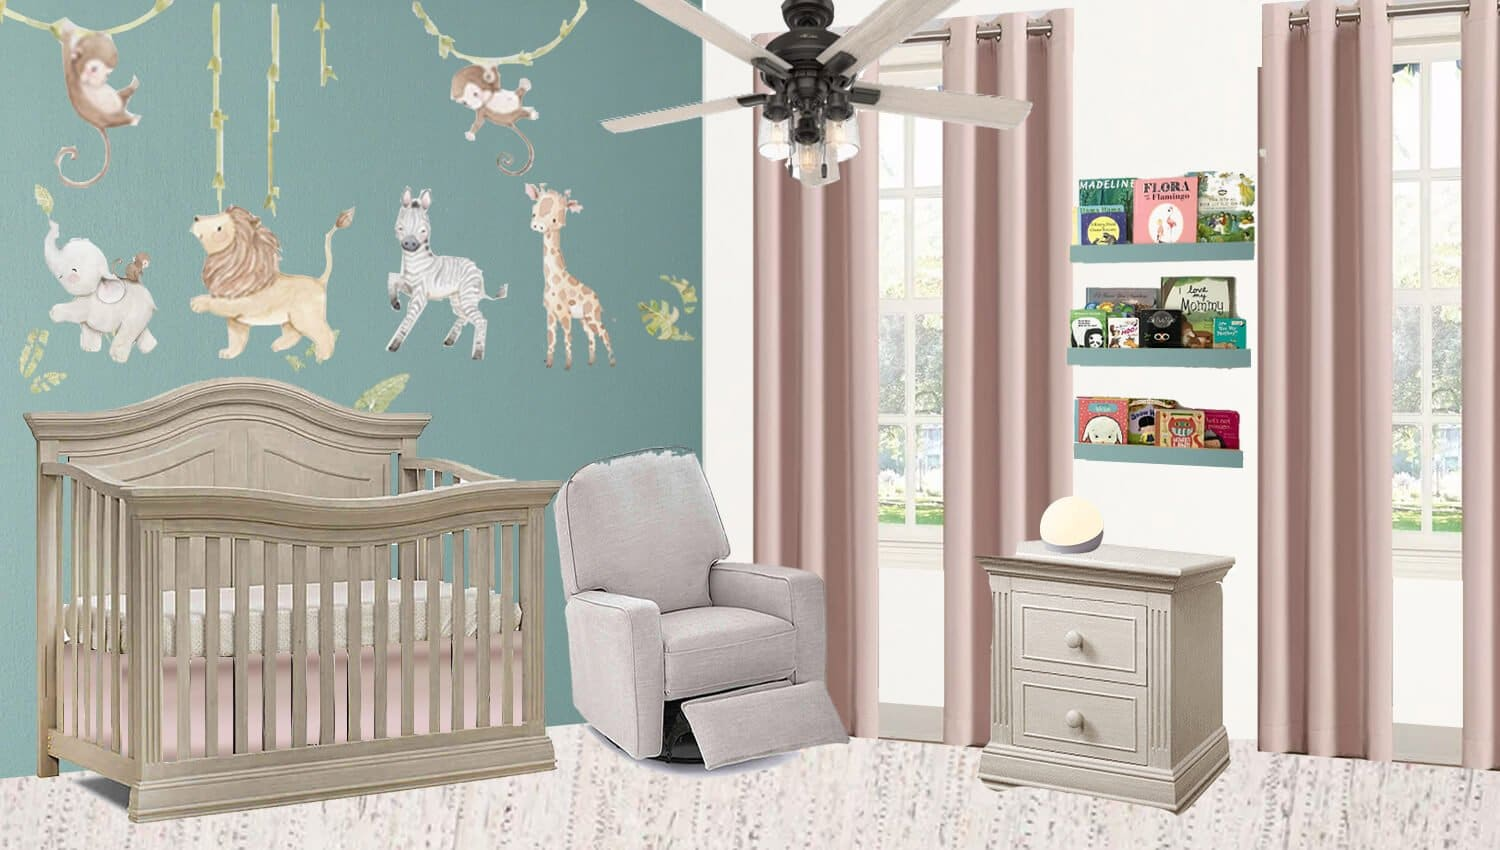 I have completed our baby girl's nursery mood board to share with you today along with the before photos. I can't wait to share the finished product with you in the next month. Come see what I have planned!